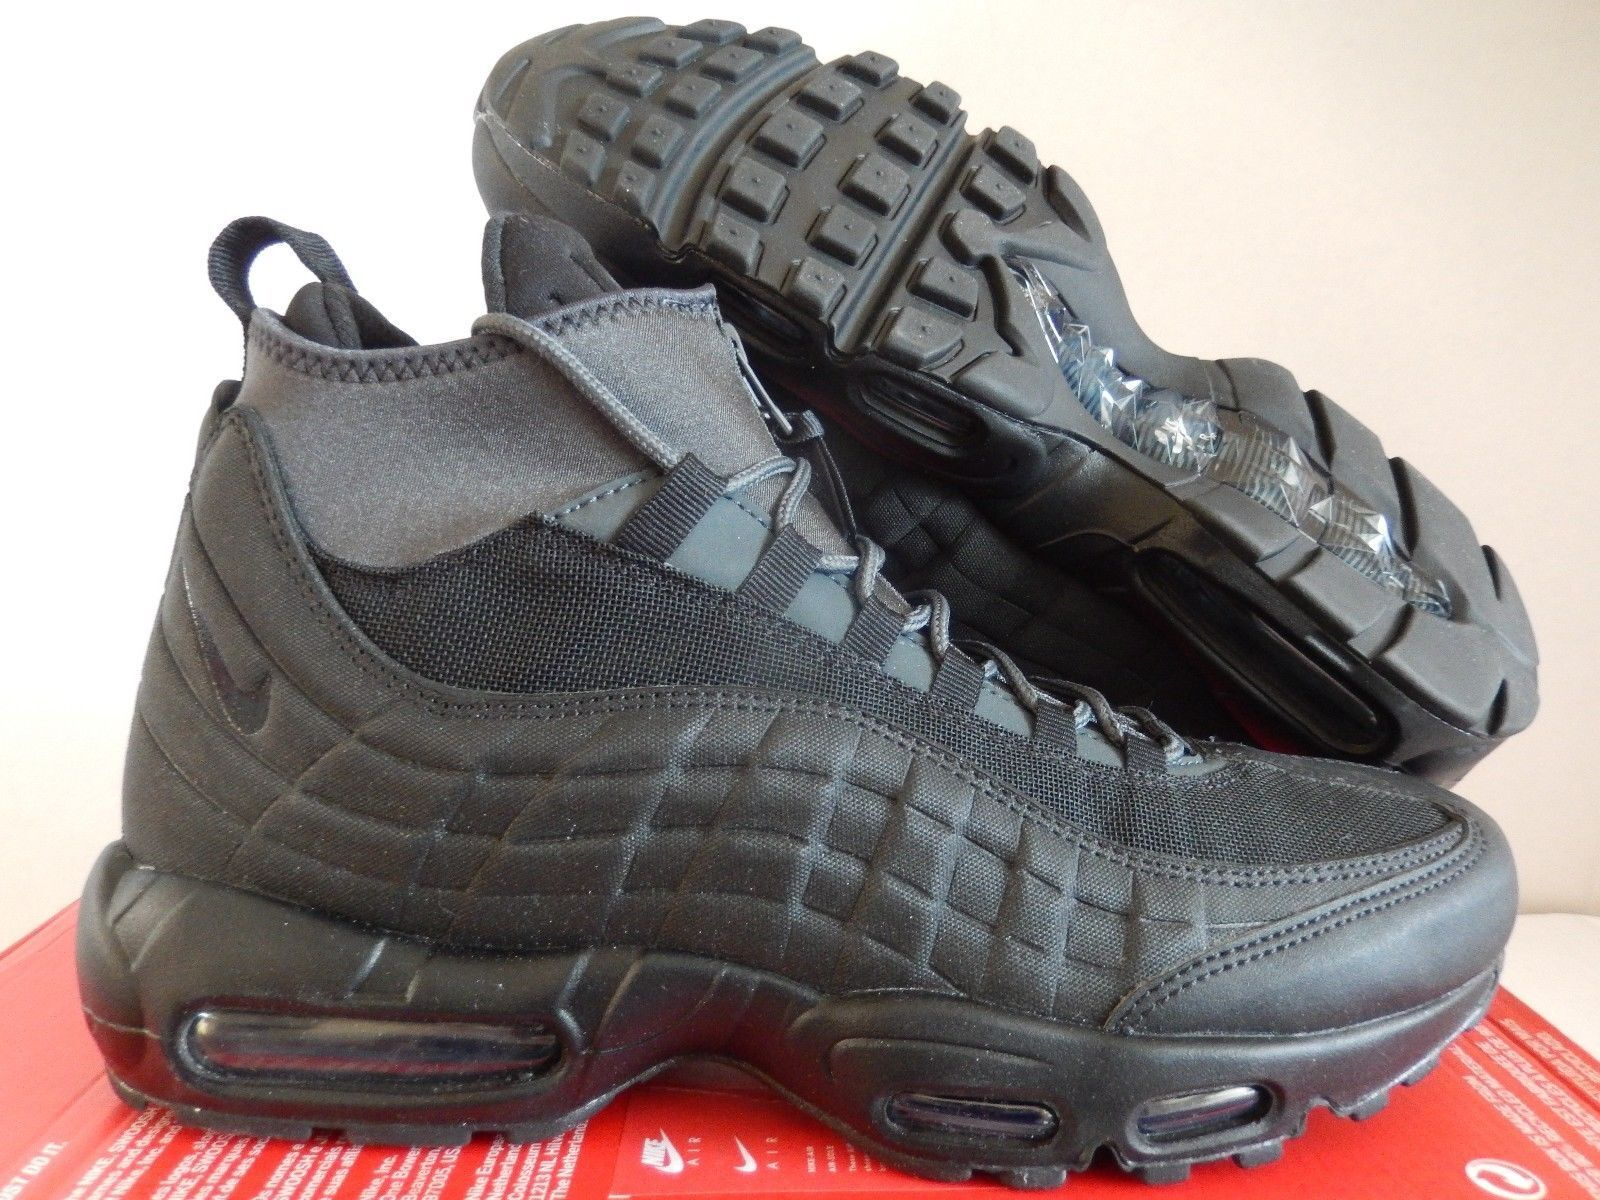 Nike Air Max 95 Sneakerboot shoes Black Anthracite White (806809 001) Size 7.5